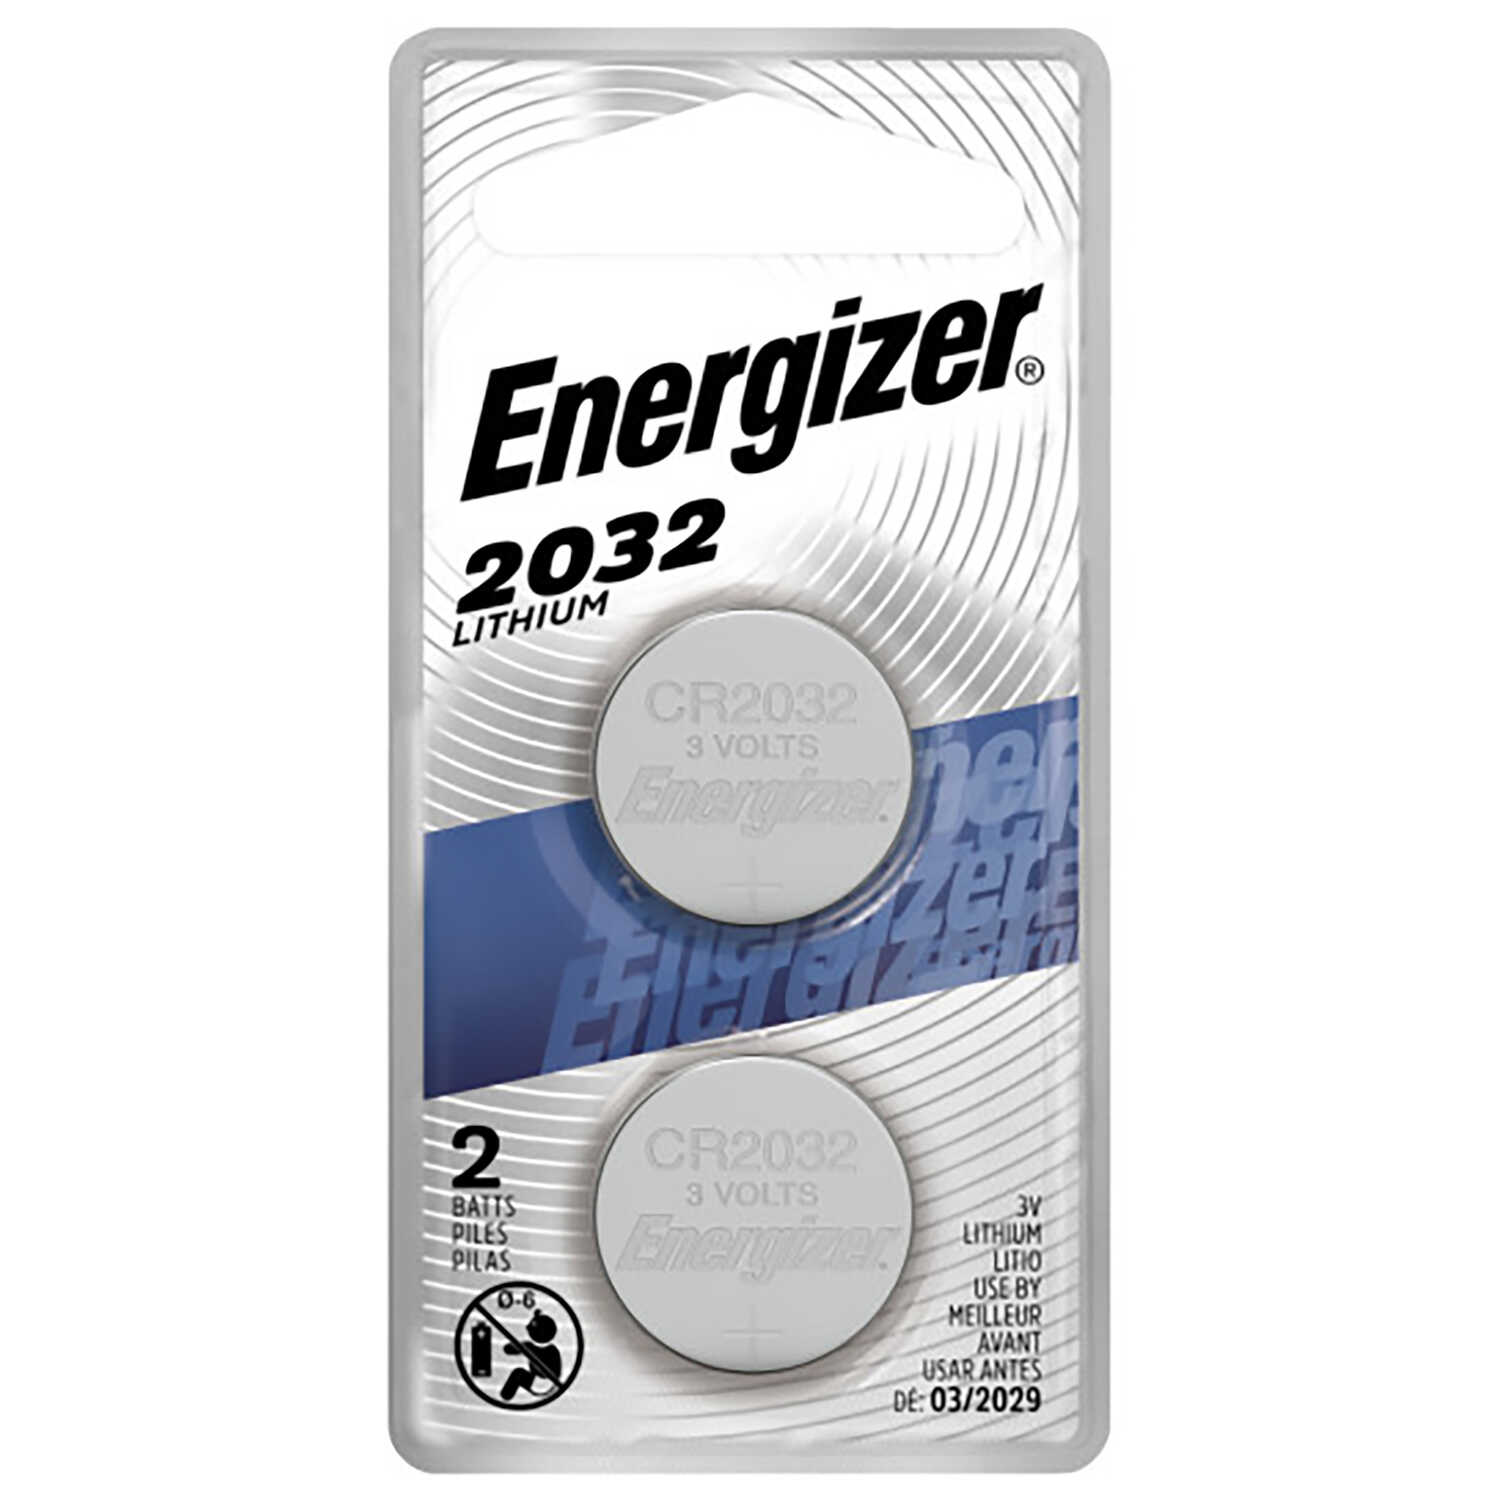 Energizer  Lithium  2032  3 volt Electronic/Watch Battery  2 pk